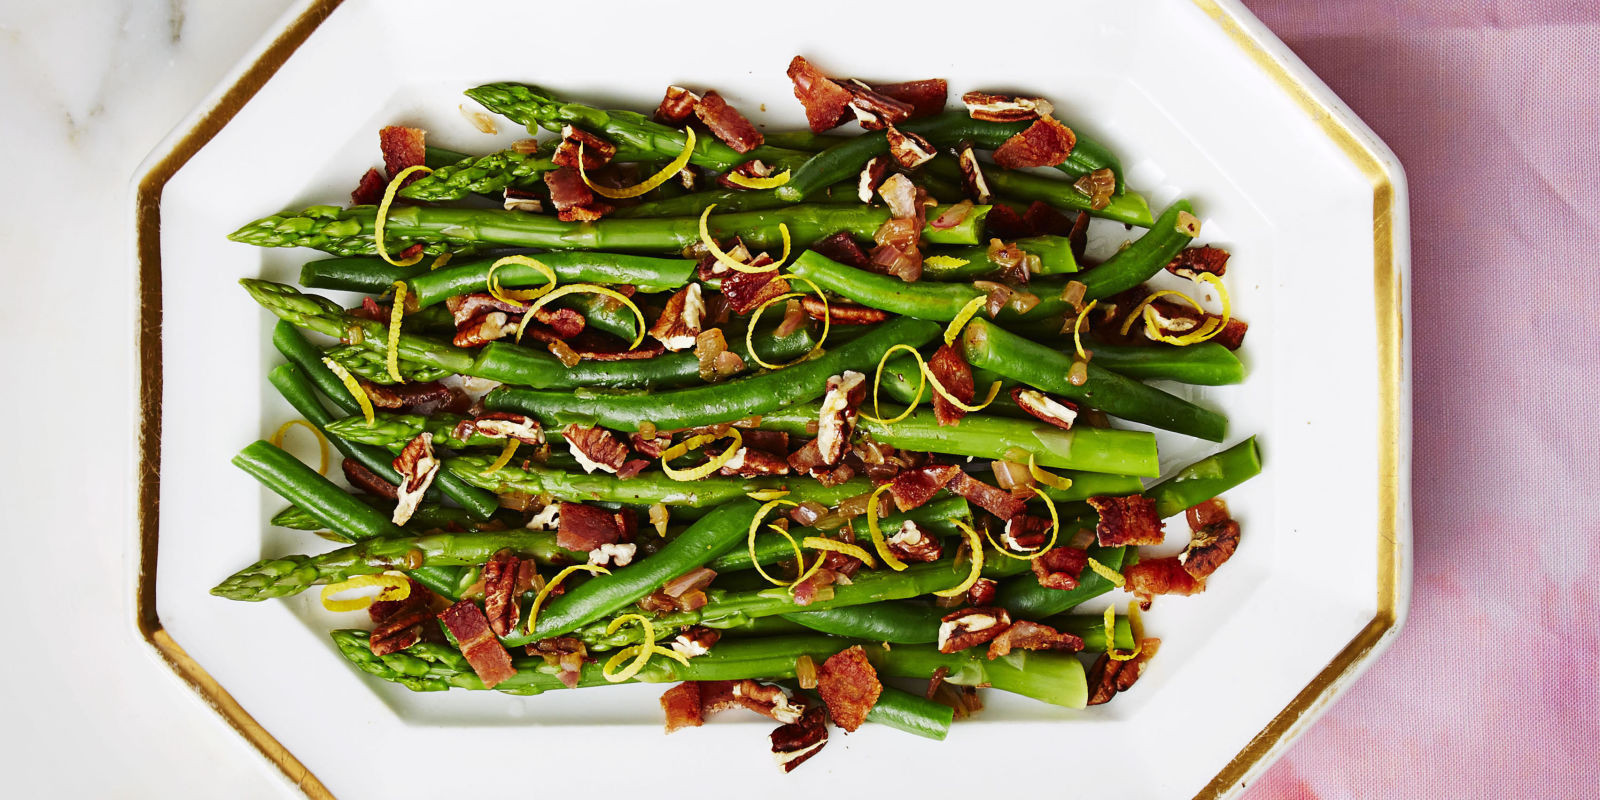 Green Bean Recipes For Thanksgiving  25 Best Green Bean Recipes for Thanksgiving Easy Ways to